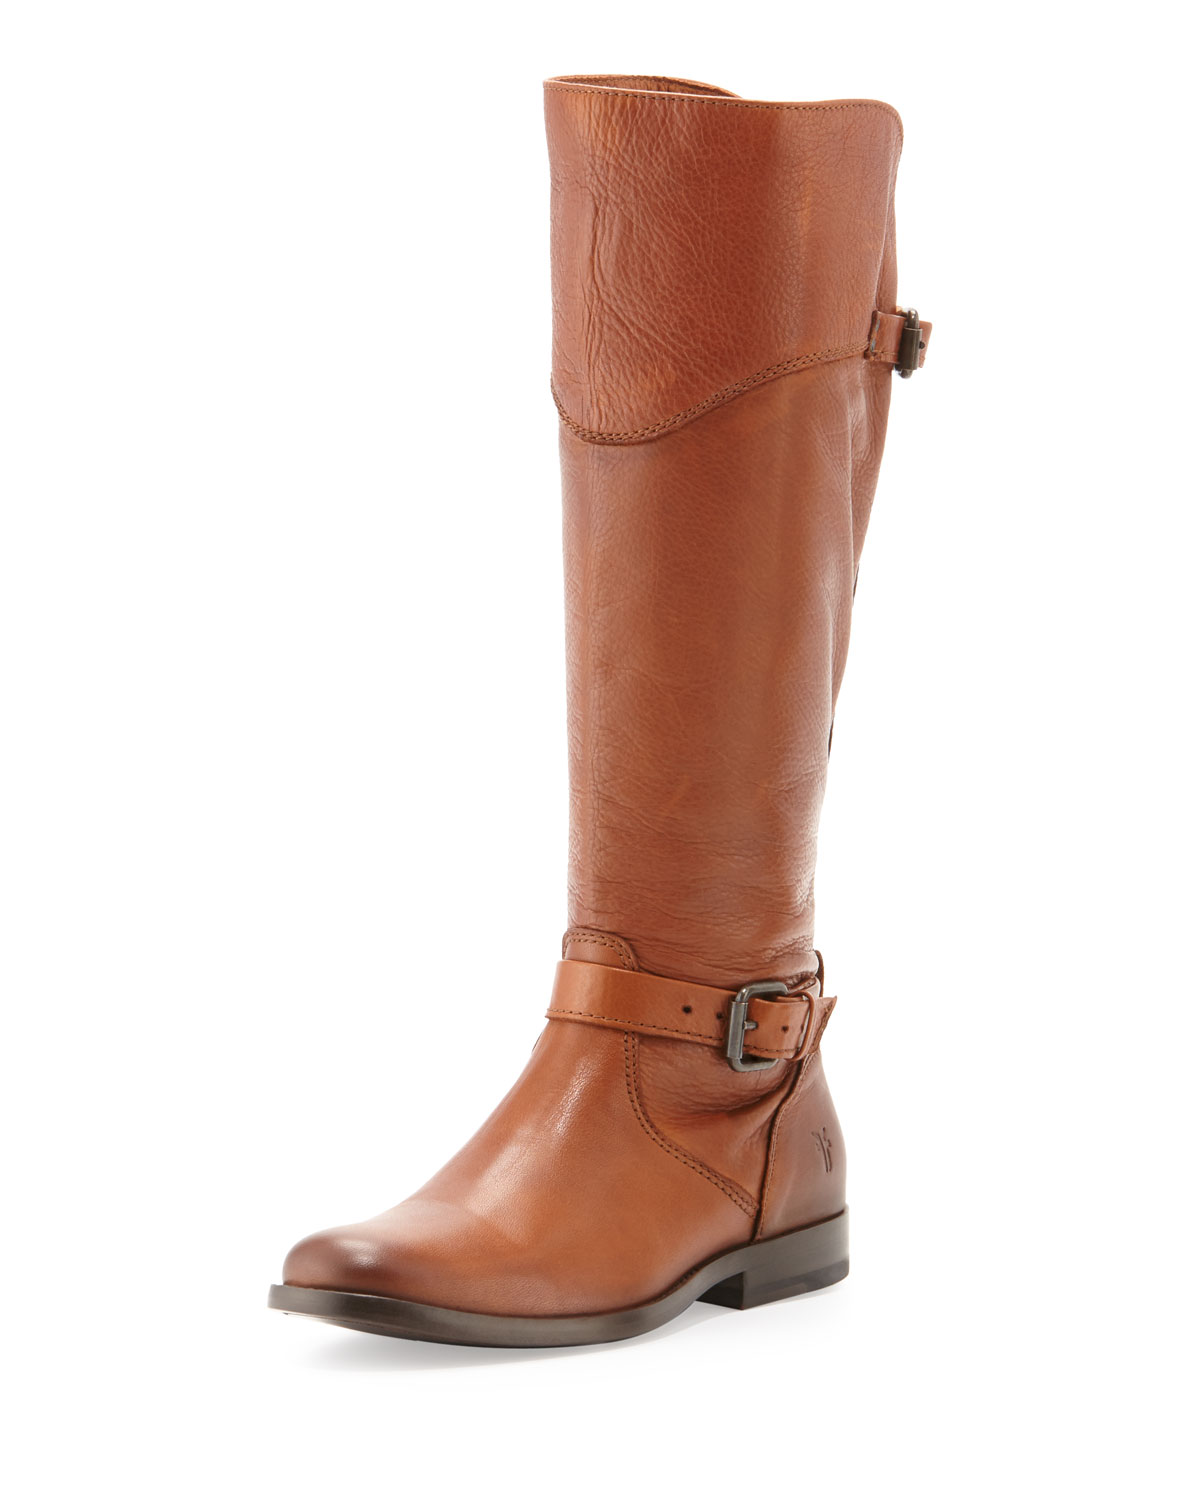 Phillip Leather Riding Boot, Whiskey